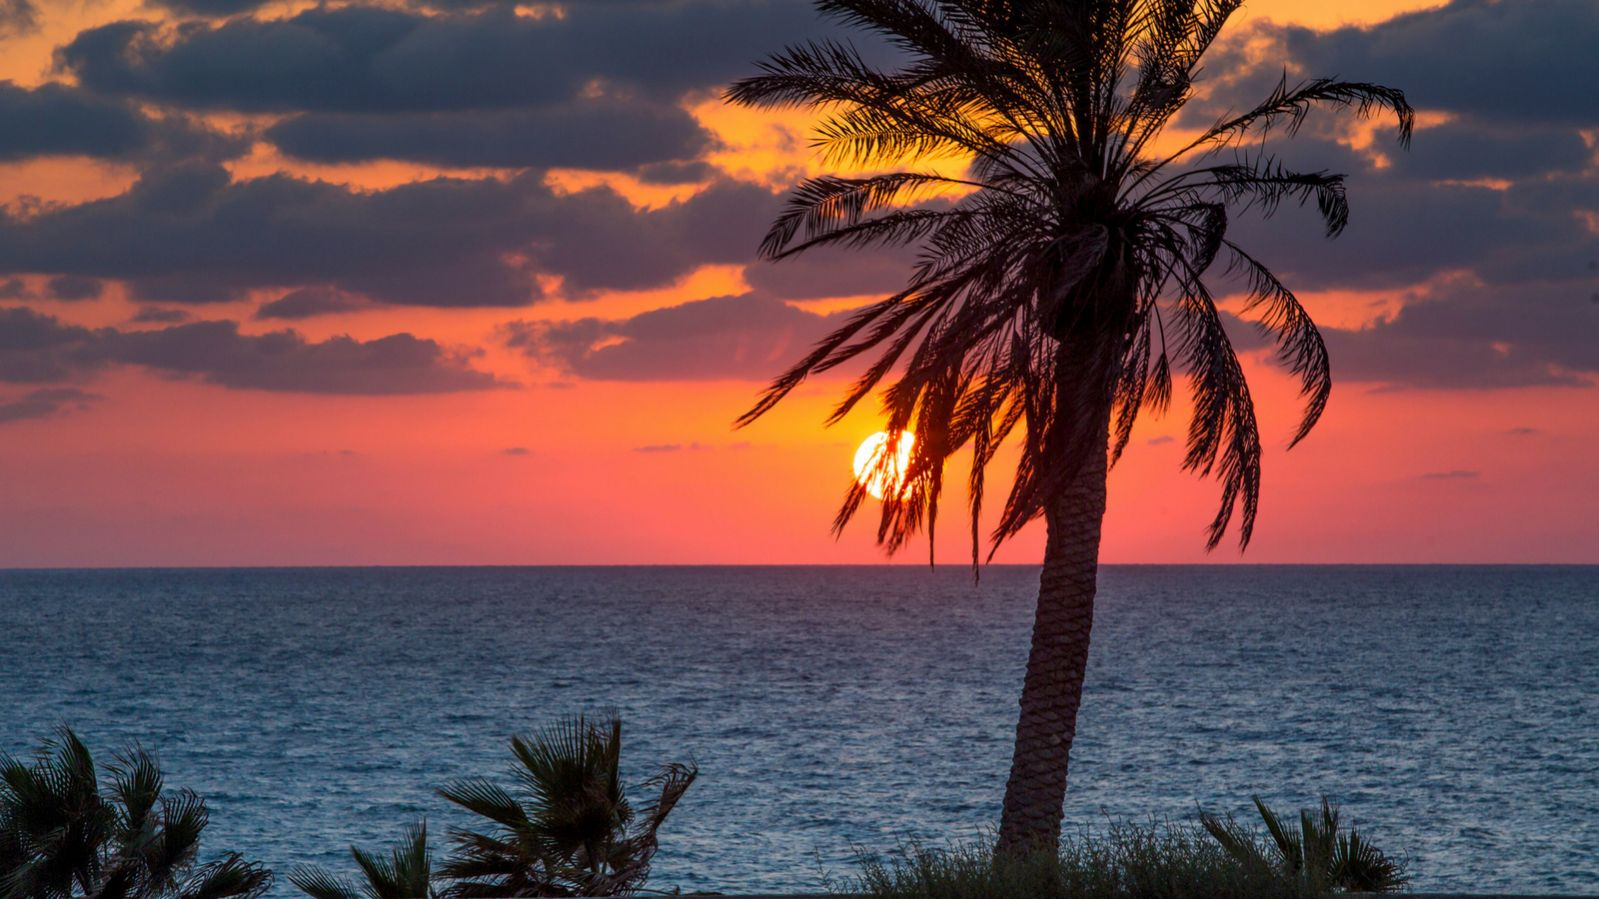 10 Spectacular Photos Of Sunsets In Israel Israel21c